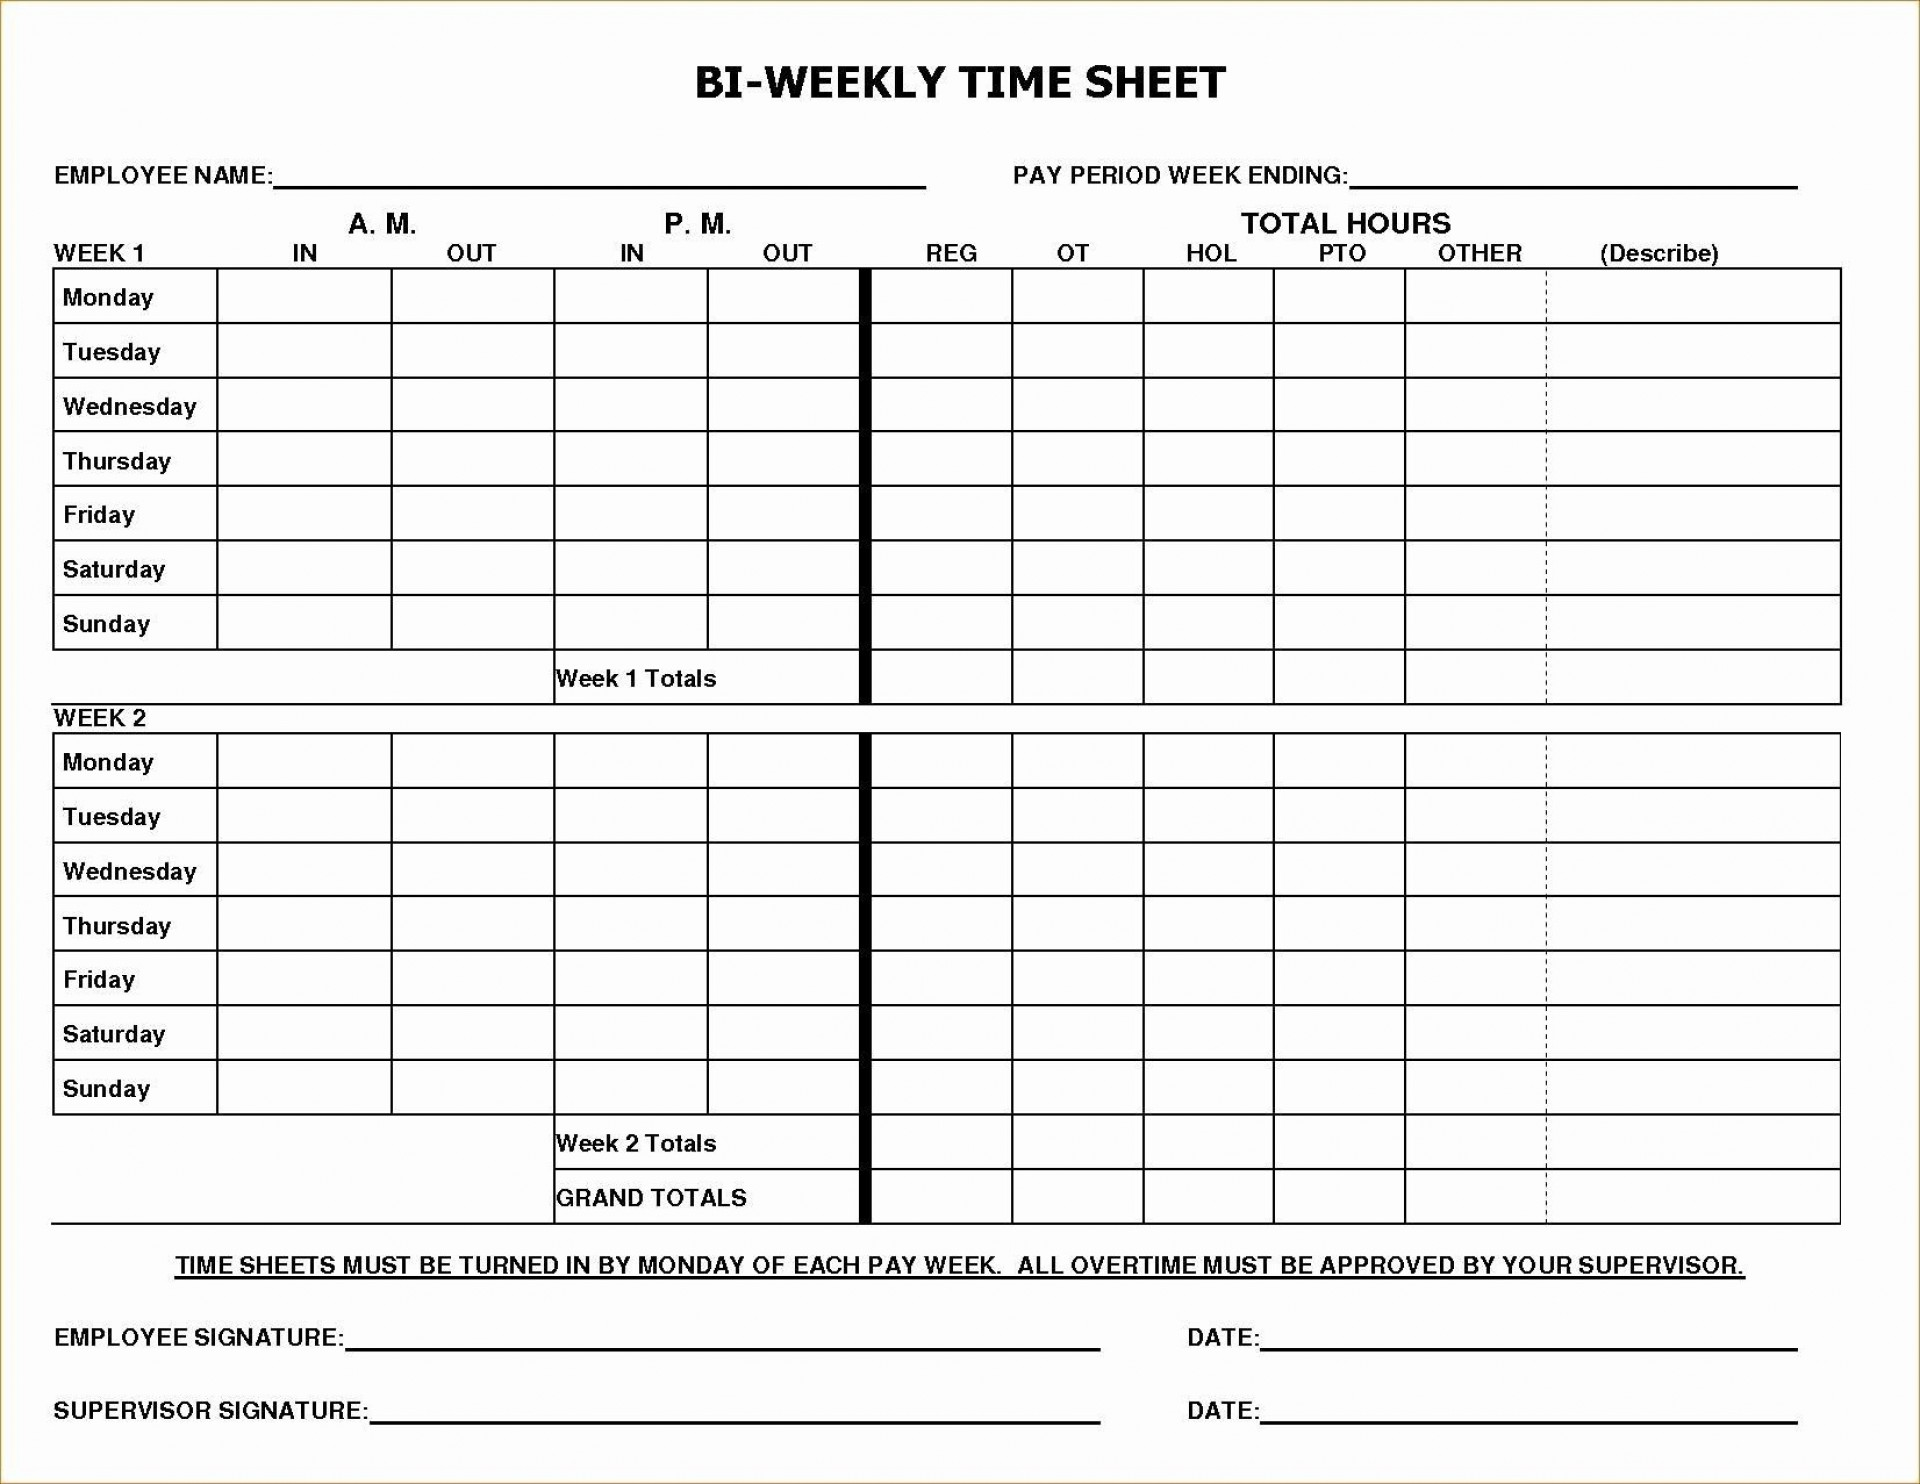 003 Stunning Microsoft Acces Employee Time Card Template Image 1920